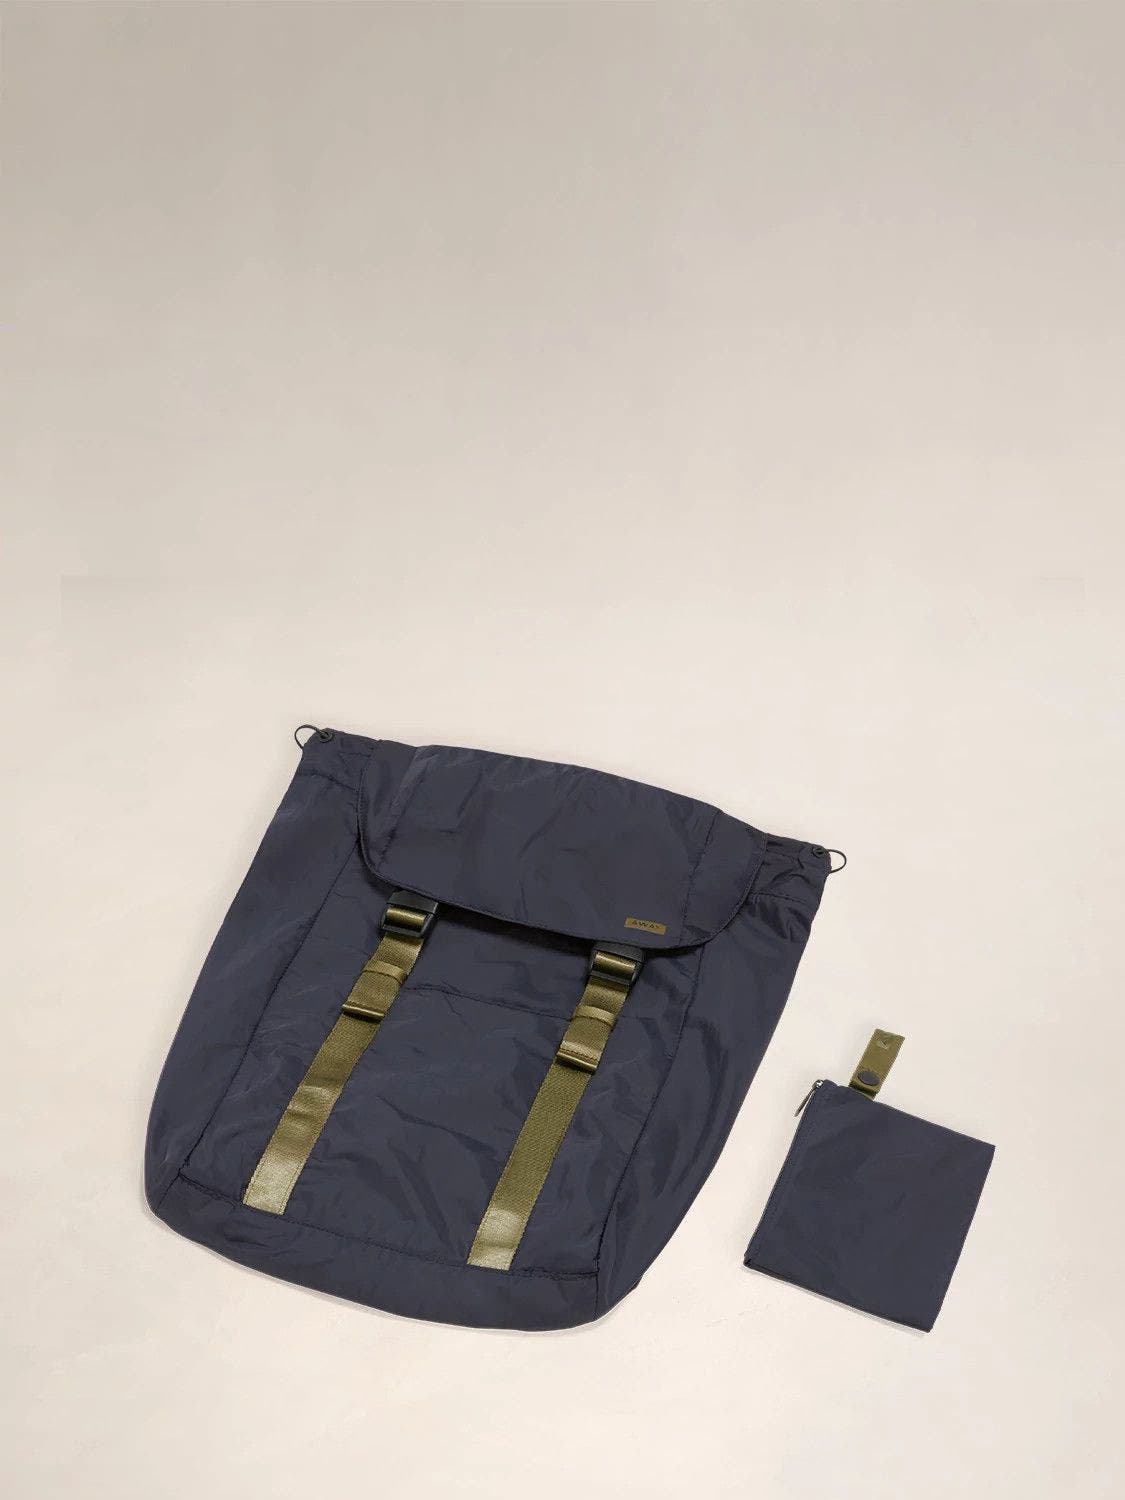 Flat view of the Away packable backpack in the color navy.